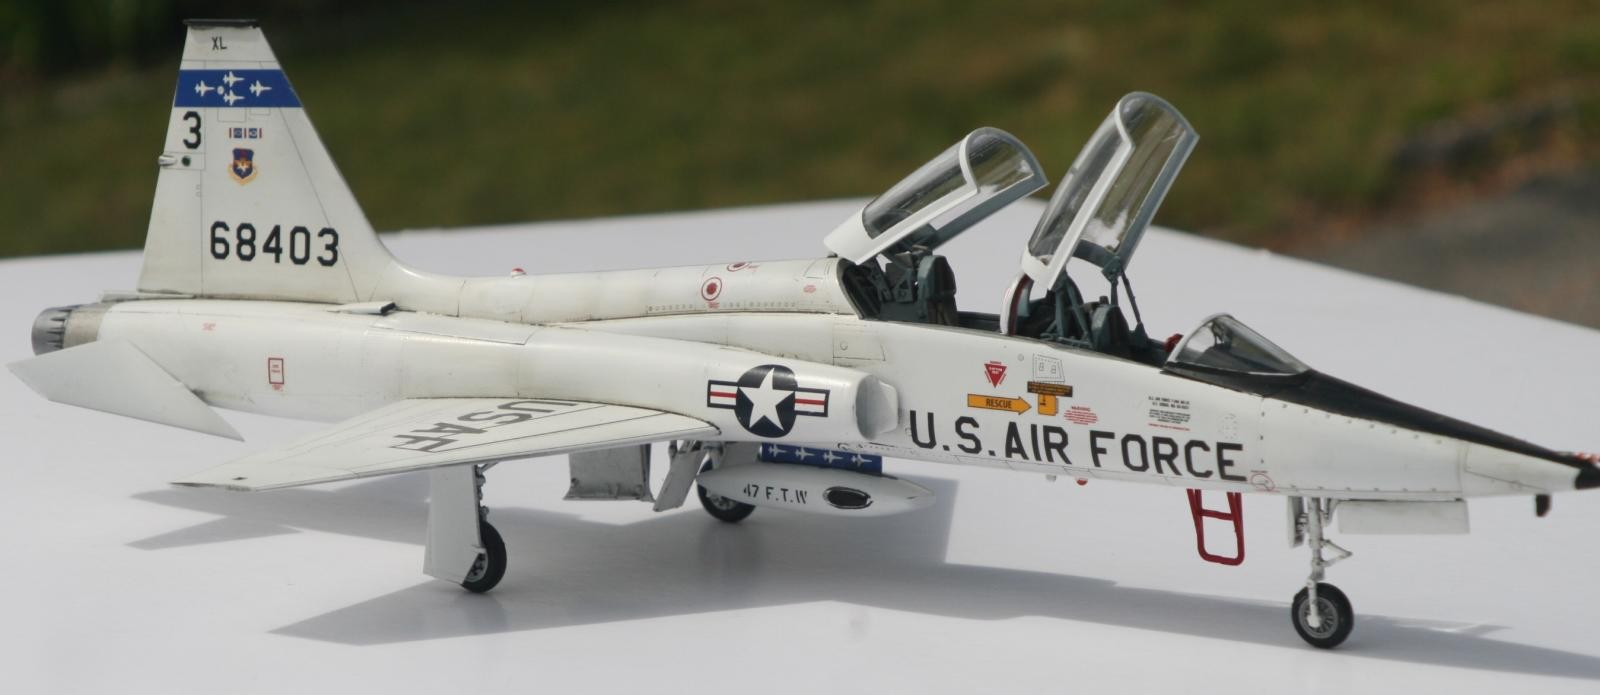 1/48 Trumpeter T-38A Talon Jet Trainer: Gem of a Kit | iModeler